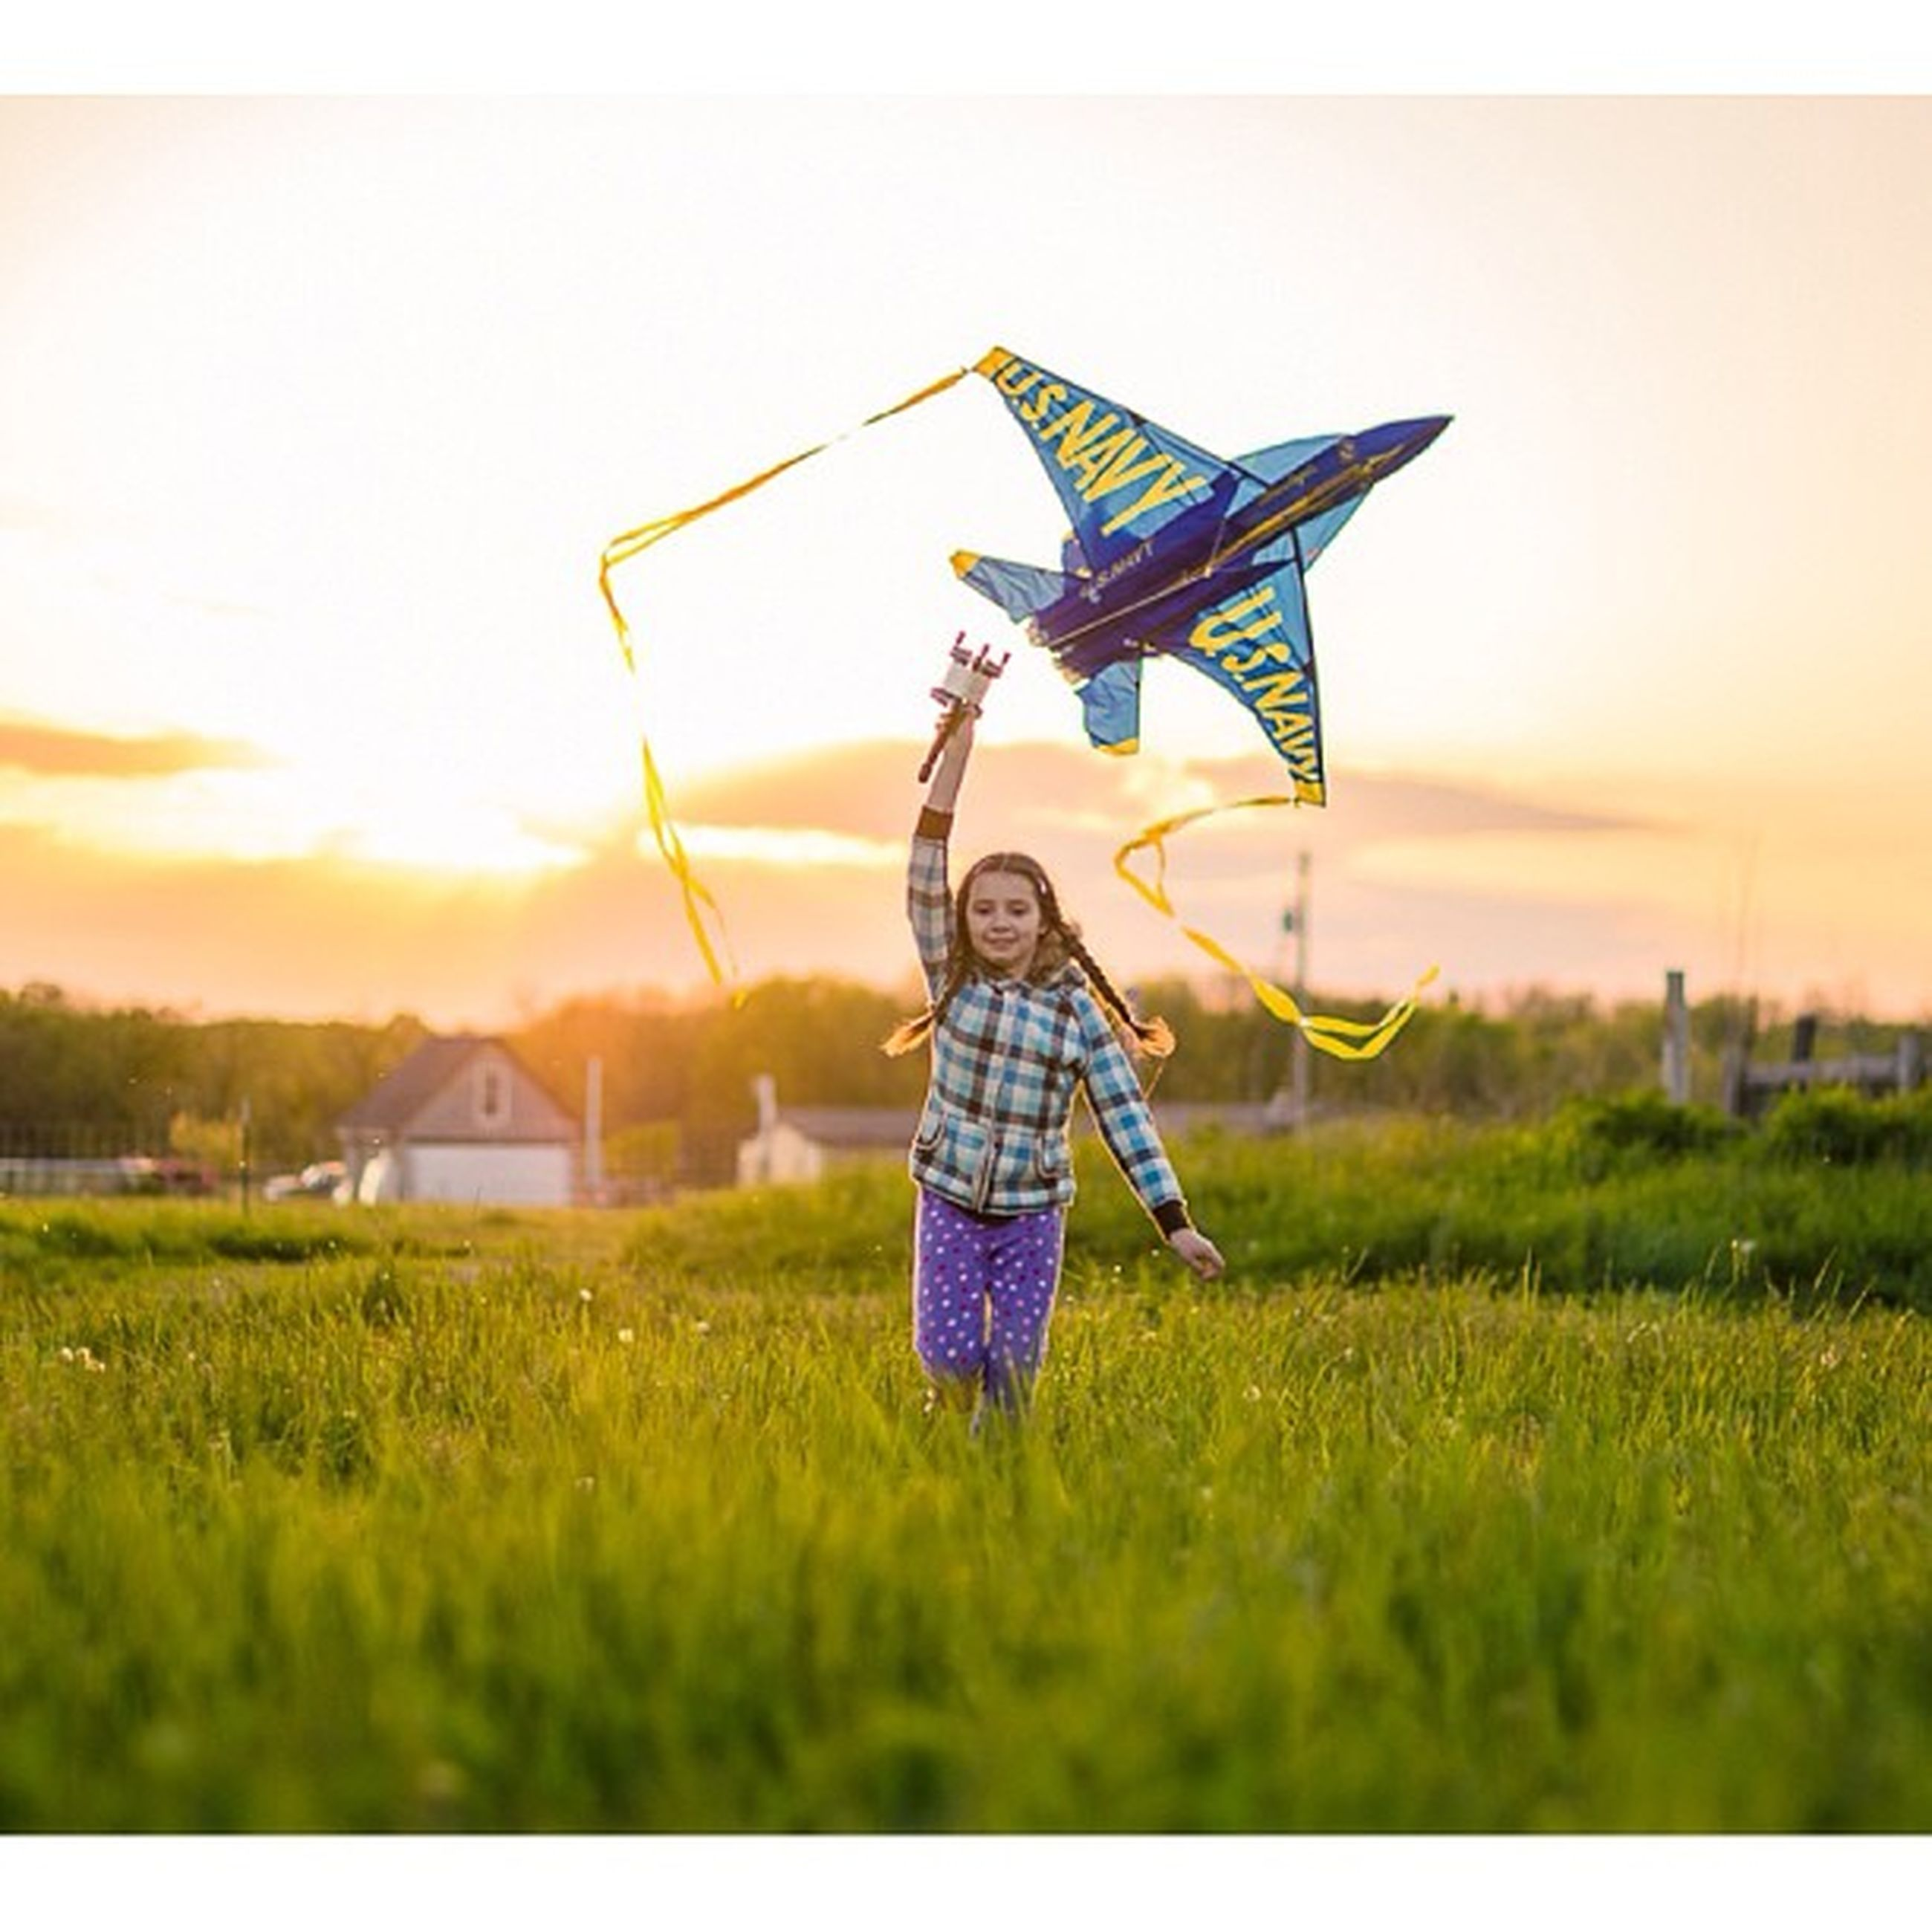 grass, field, grassy, leisure activity, sky, lifestyles, landscape, full length, mid-air, auto post production filter, enjoyment, standing, transfer print, casual clothing, green color, sunset, outdoors, nature